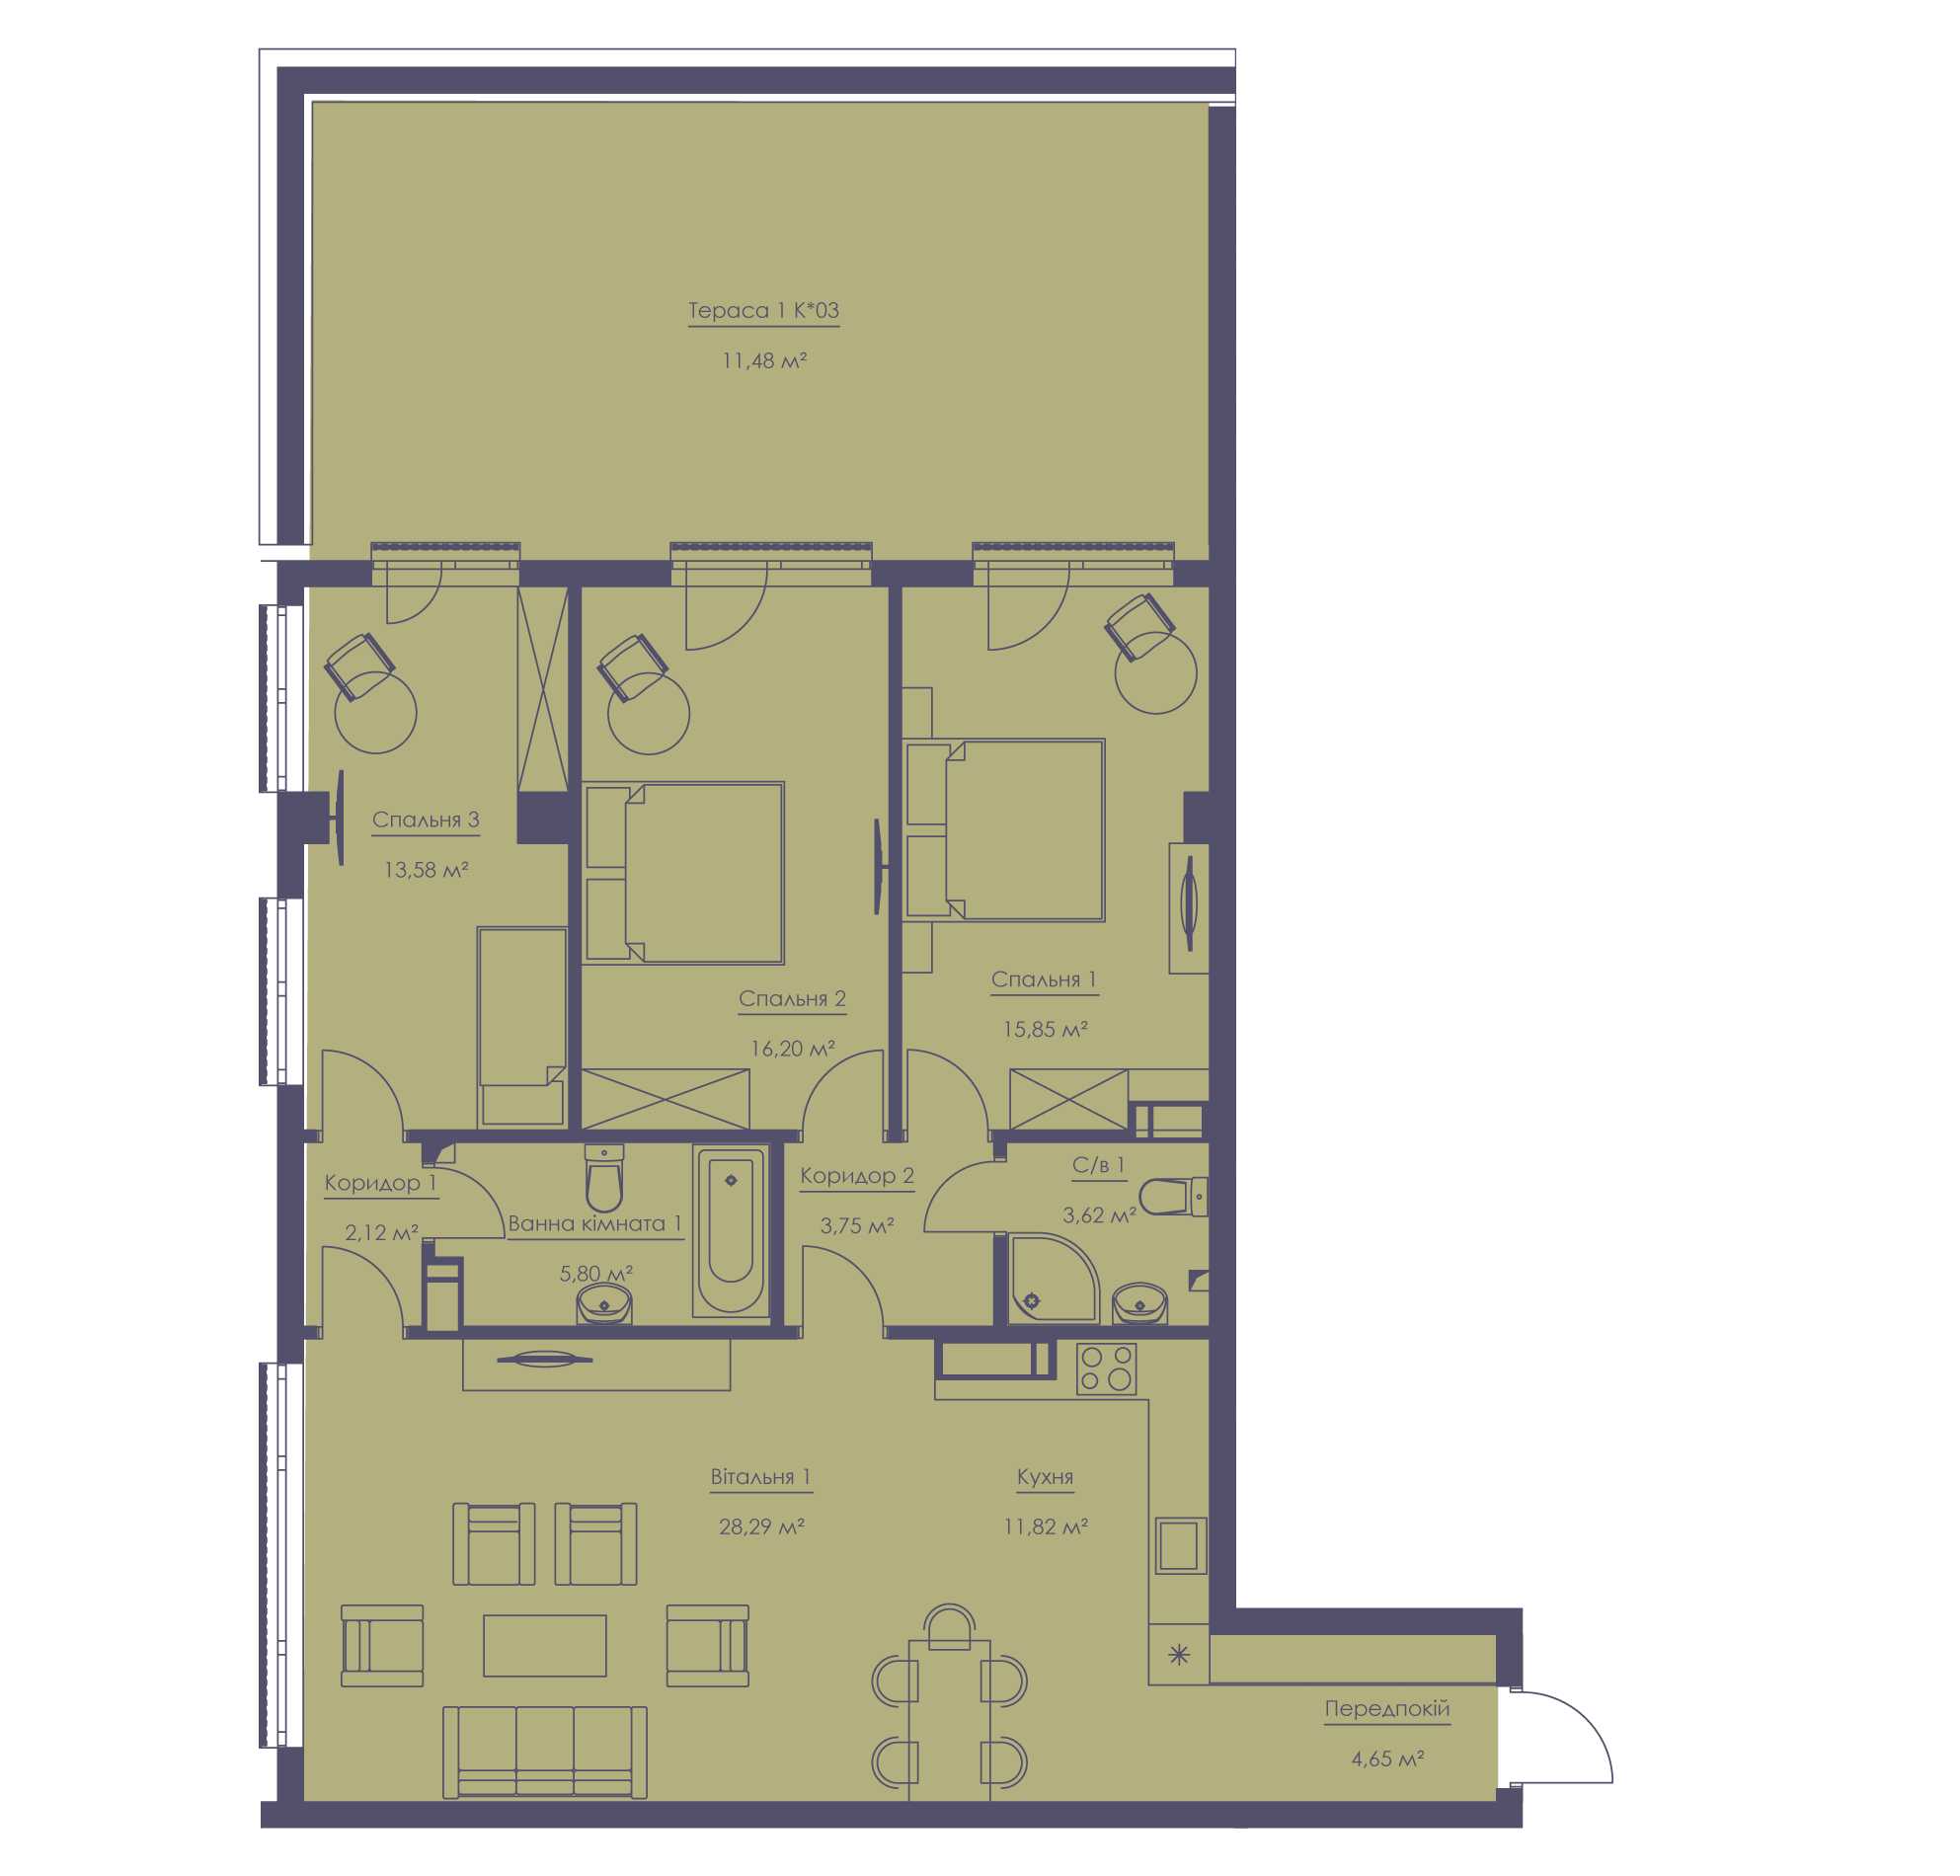 Apartment layout KV_6_1.4b_1_1_6-1